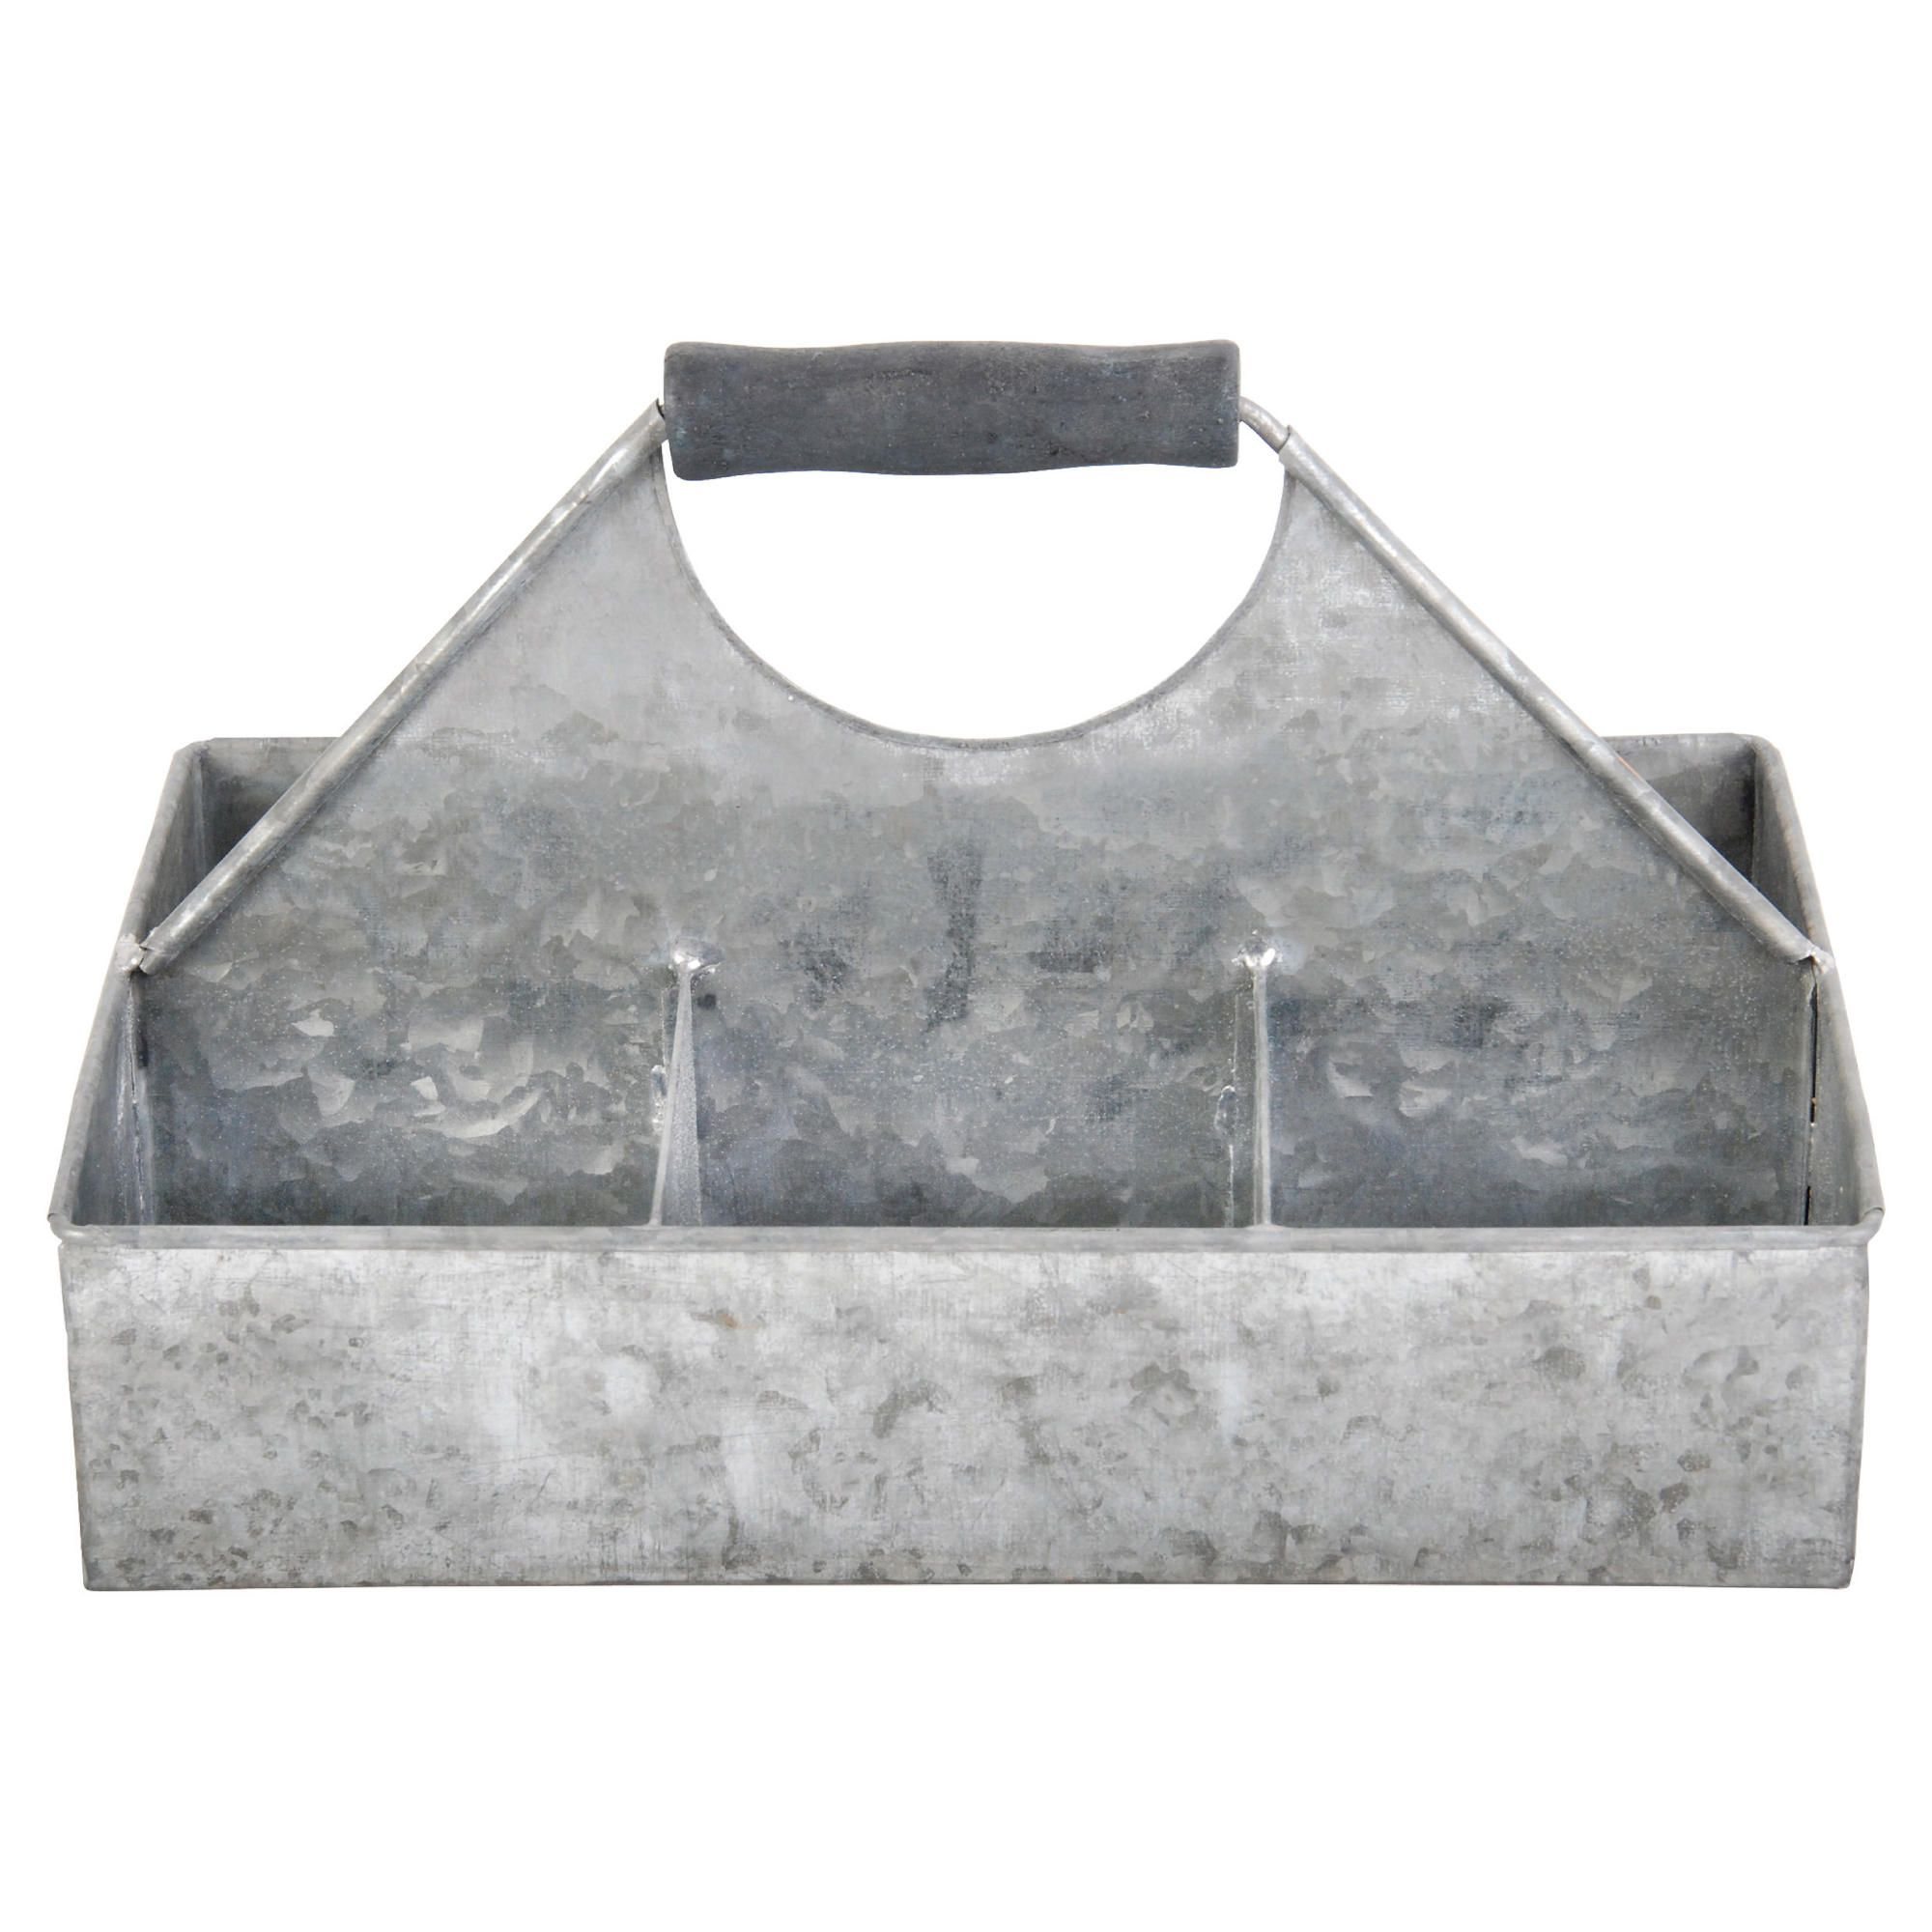 Offerta: Fallen Fruits Old Zinc Square Basket With Storage, Small